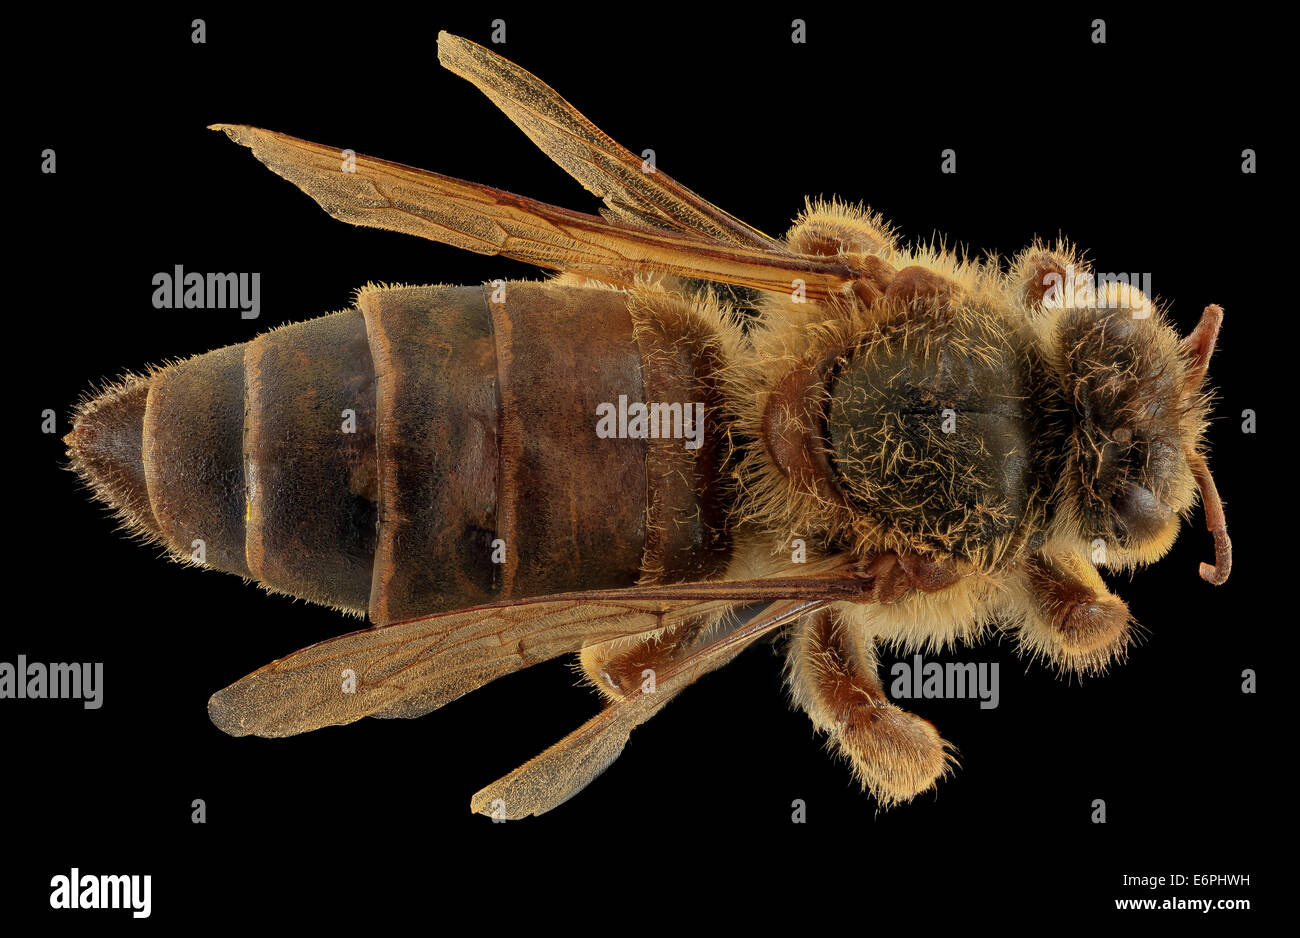 Apis mellifera, Queen, back, MD, Talbot County_2013-09-30-173504 ZS PMax_10030701423_o Queen Bee photo spread. Collected - Stock Image